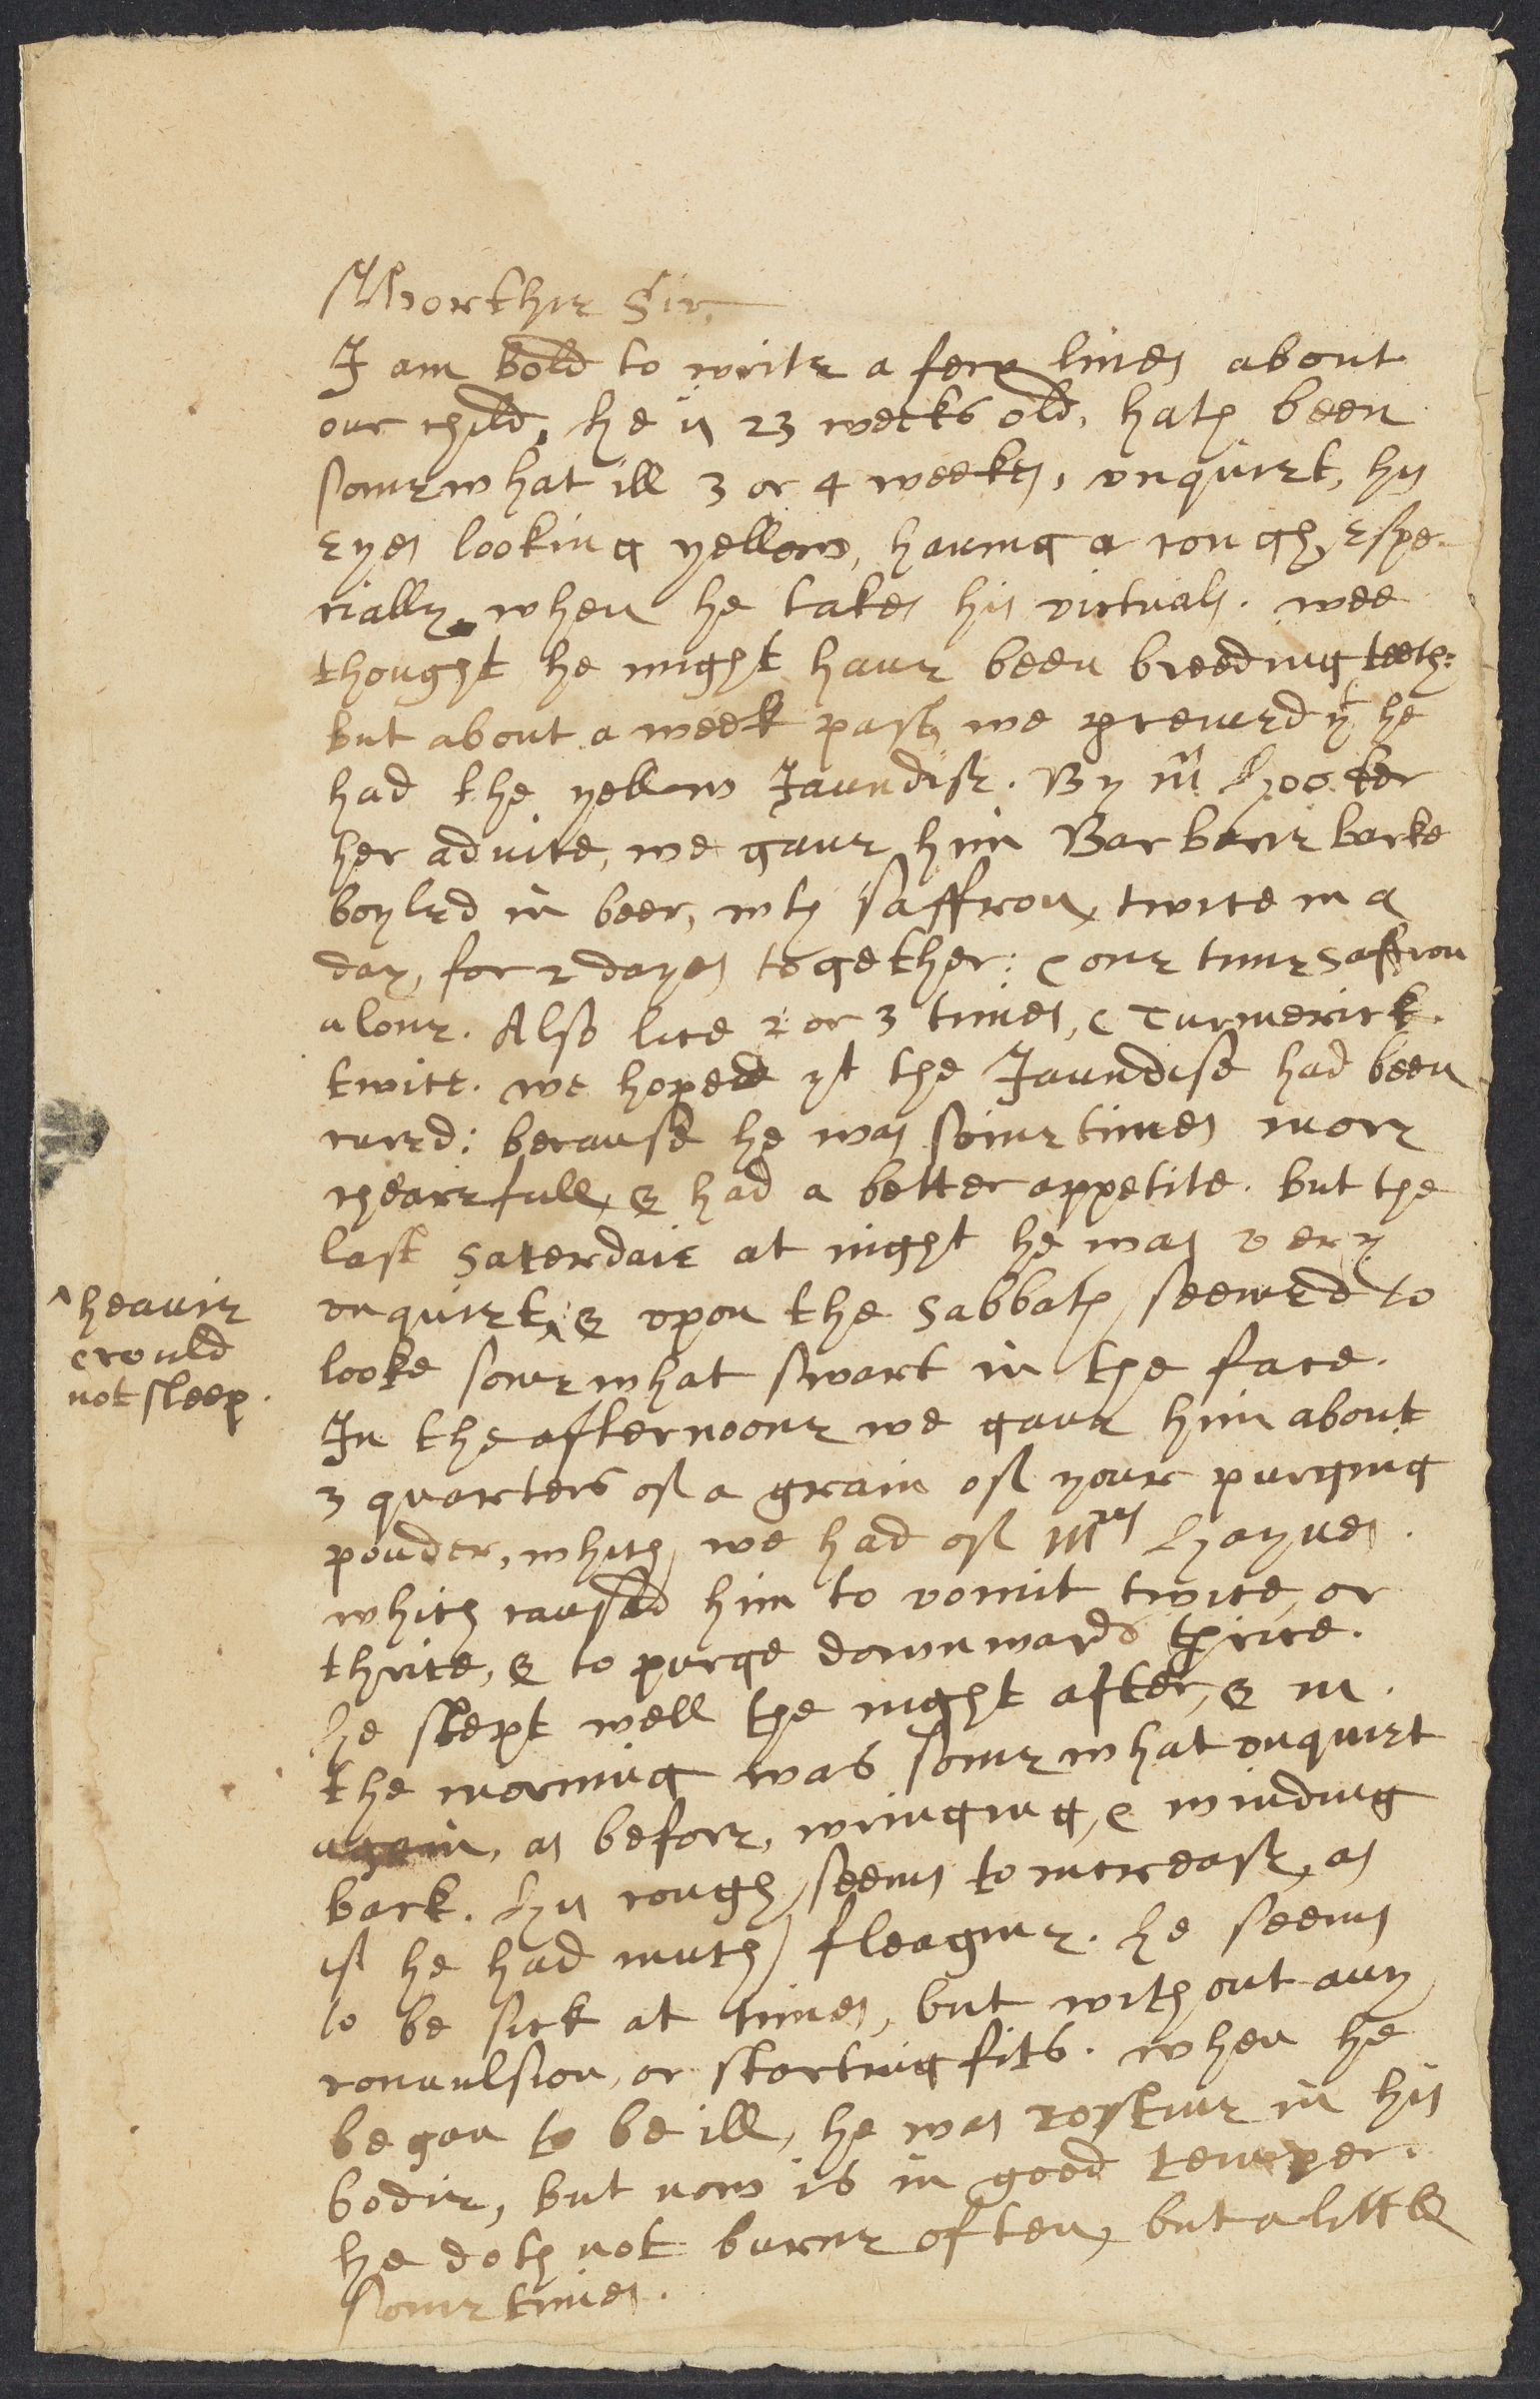 Stone, Sam, 1602-1663, autographed letter signed to John Winthrop; Hartford, 1 side (3 pages), 1652 February 1652